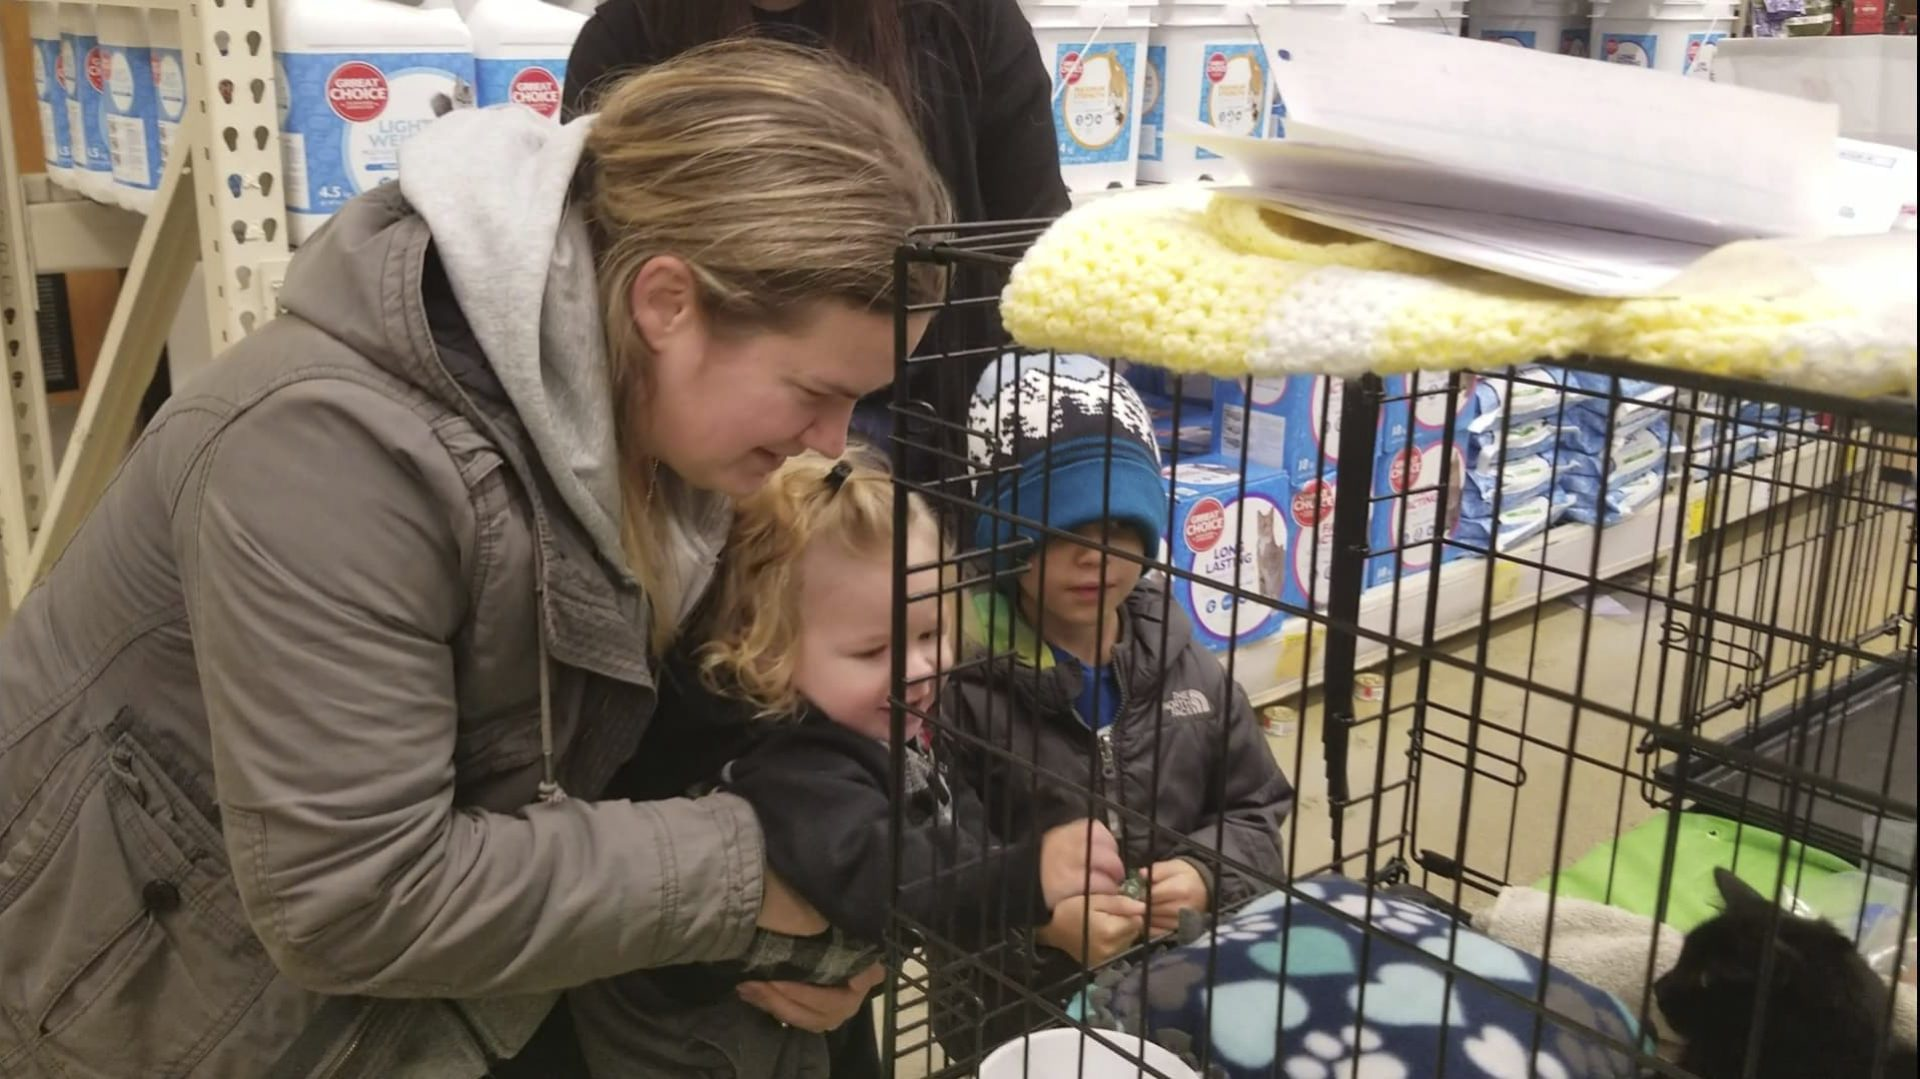 A woman and two boys pet a black cat